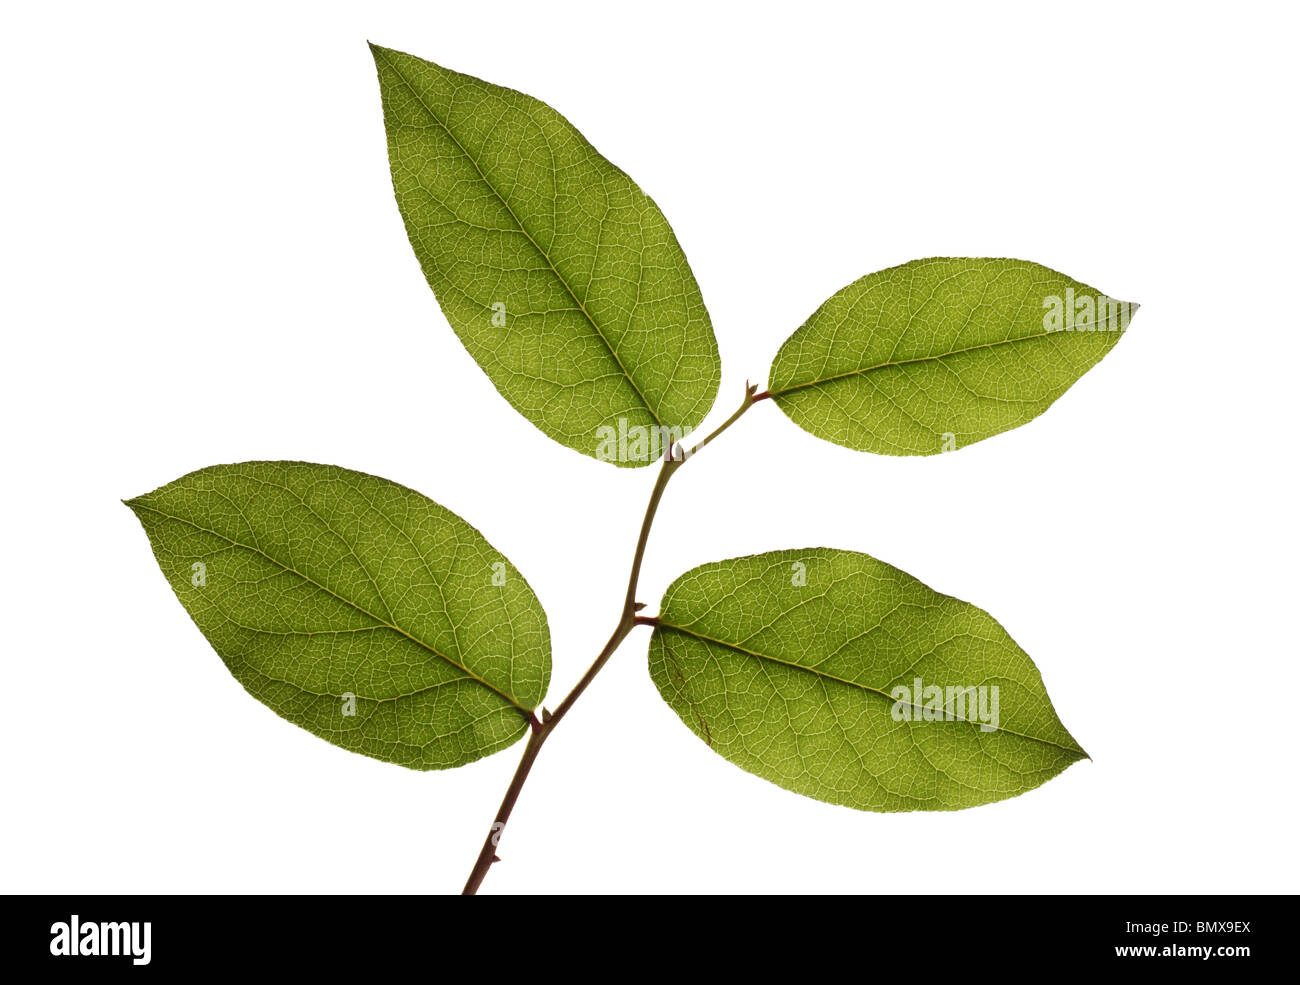 Four green plant leaves on a branch, white background - Stock Image